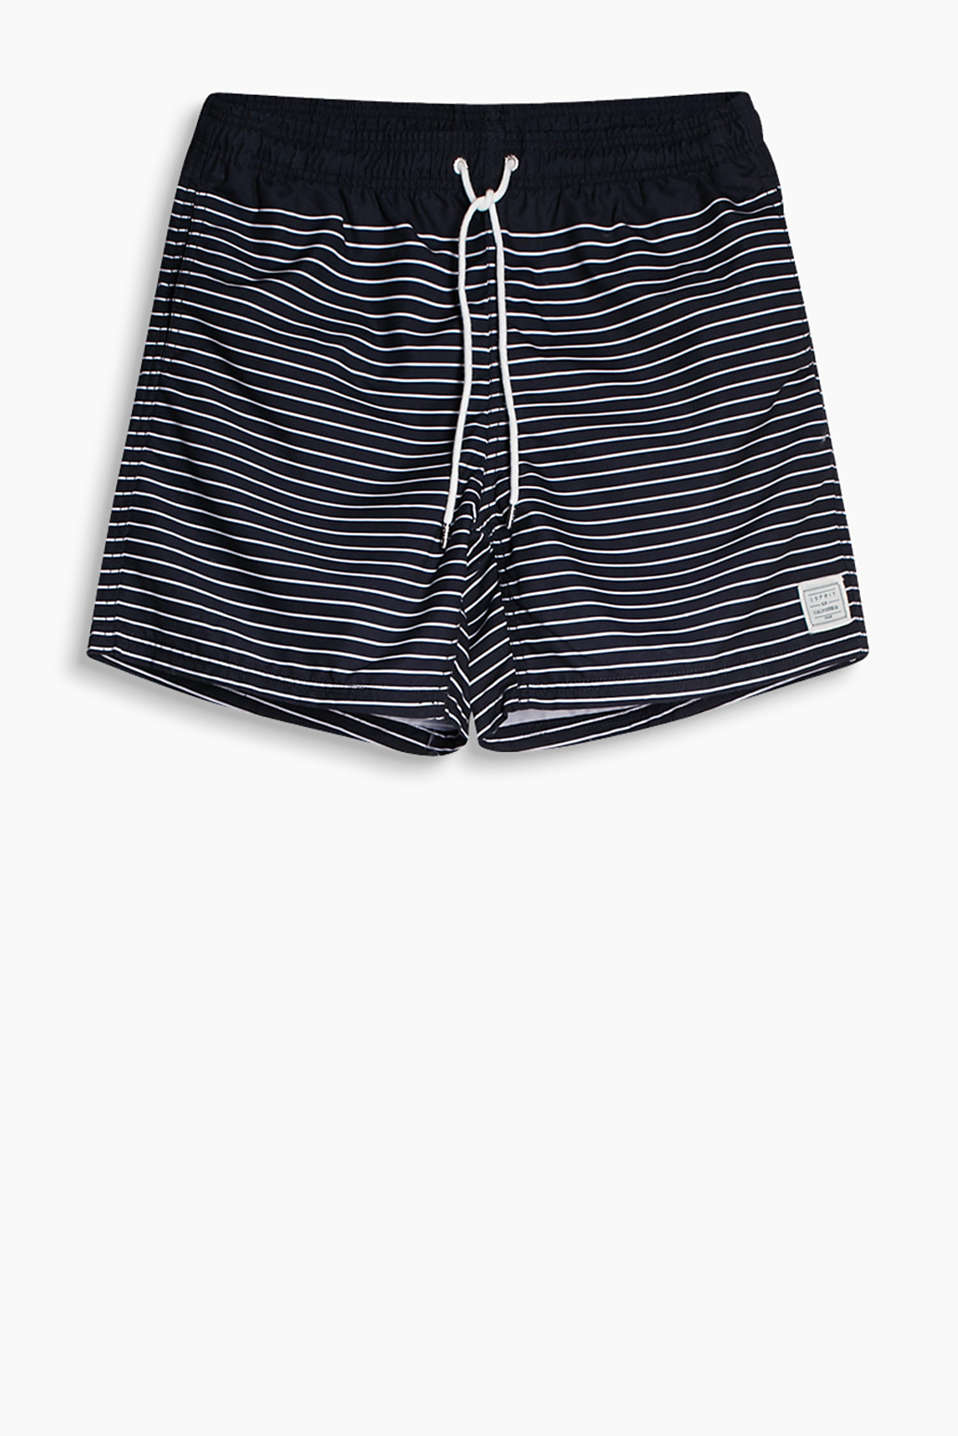 Swim shorts in a nautical striped look with a longer leg